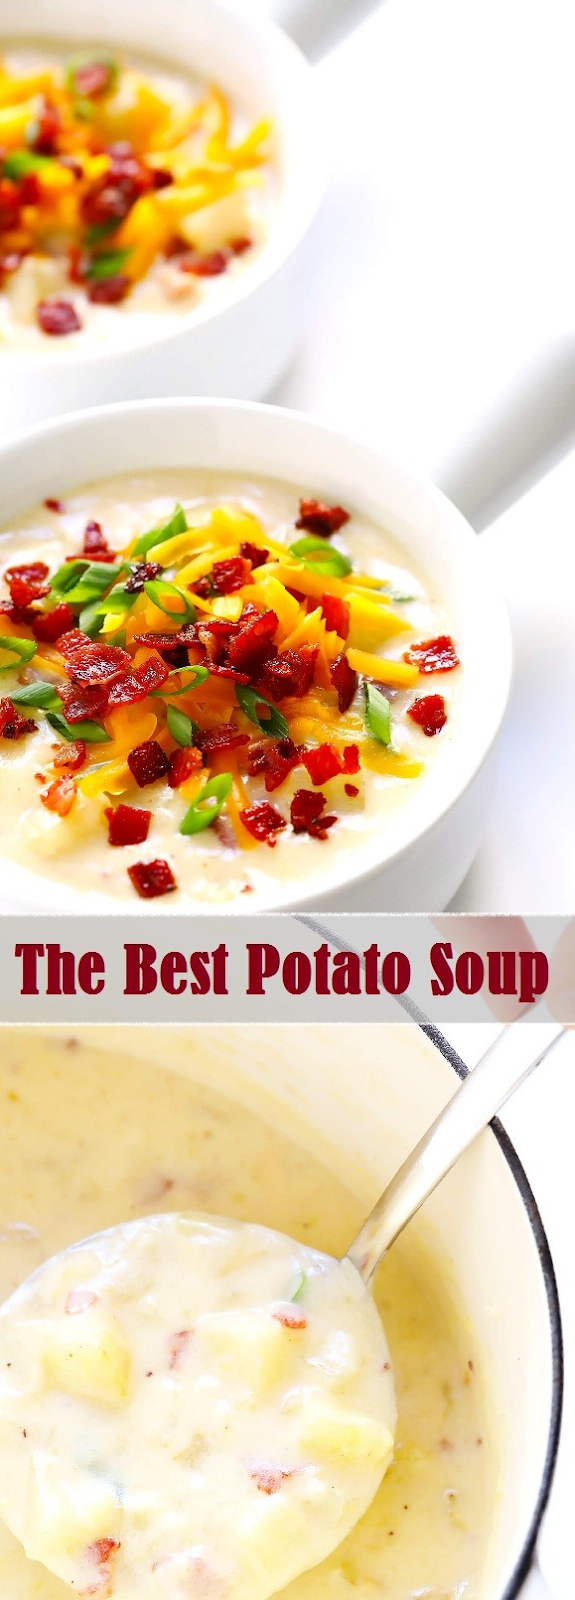 The Best Potato Soup